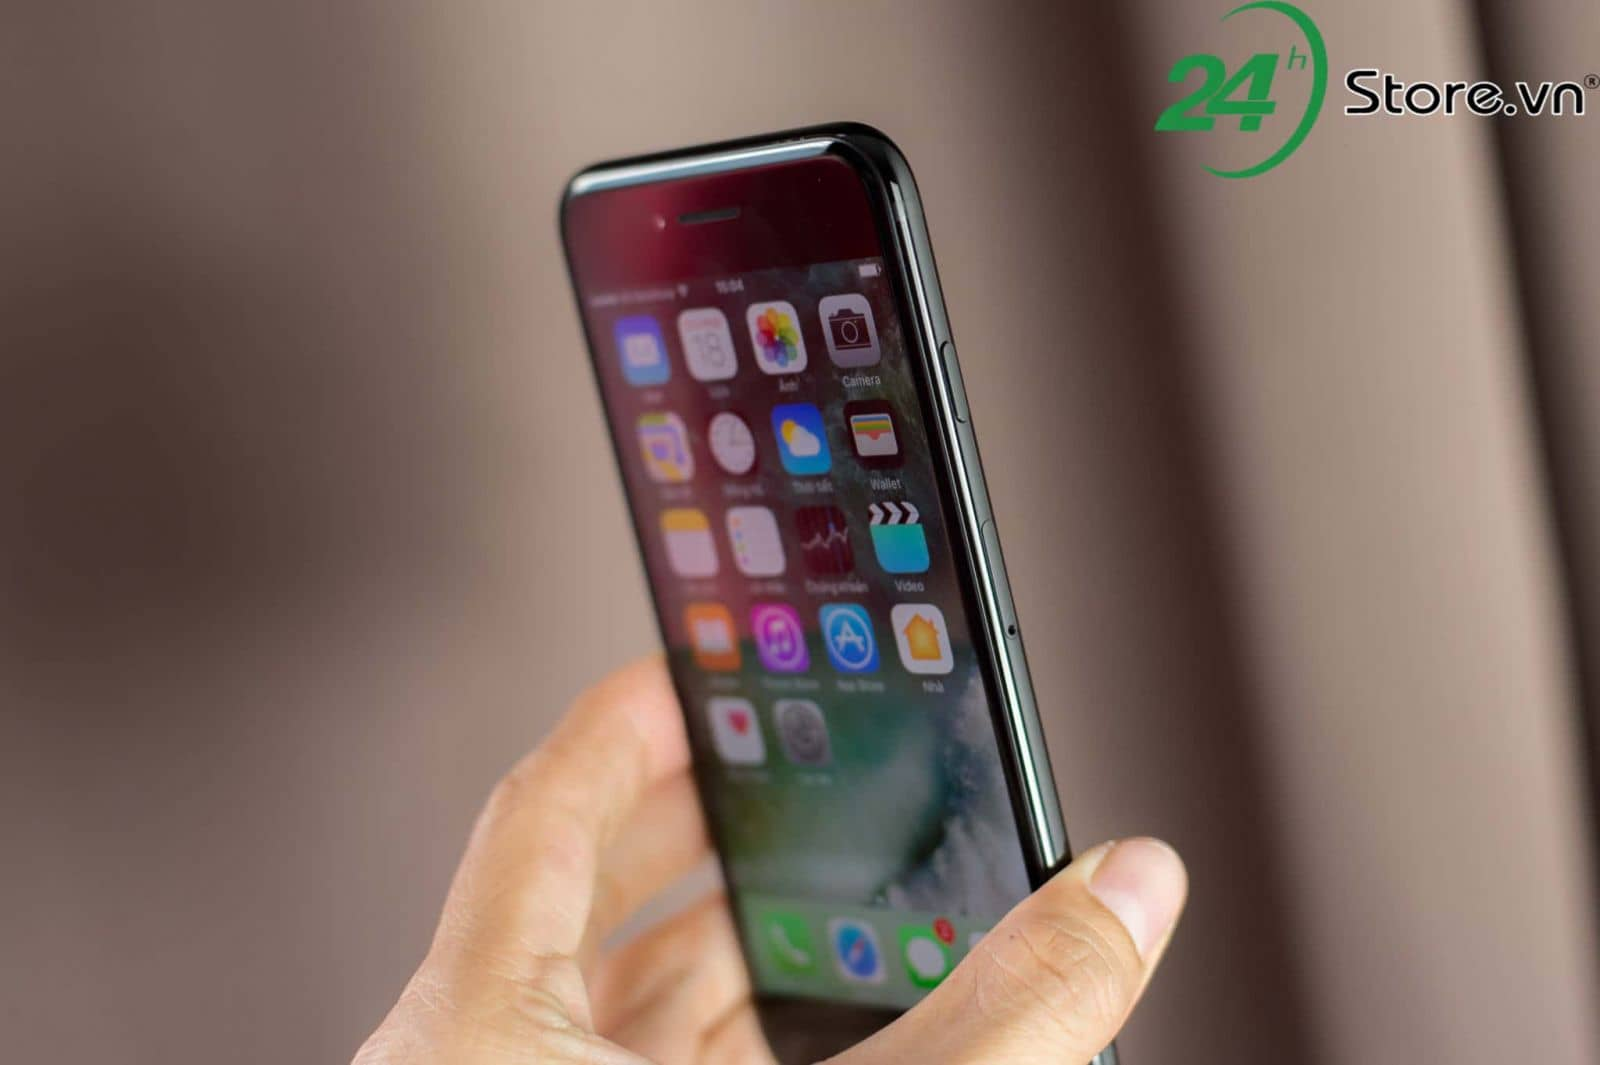 5 ly do khien ban nen mua iphone 7 cu hon iphone x hinh 2 min